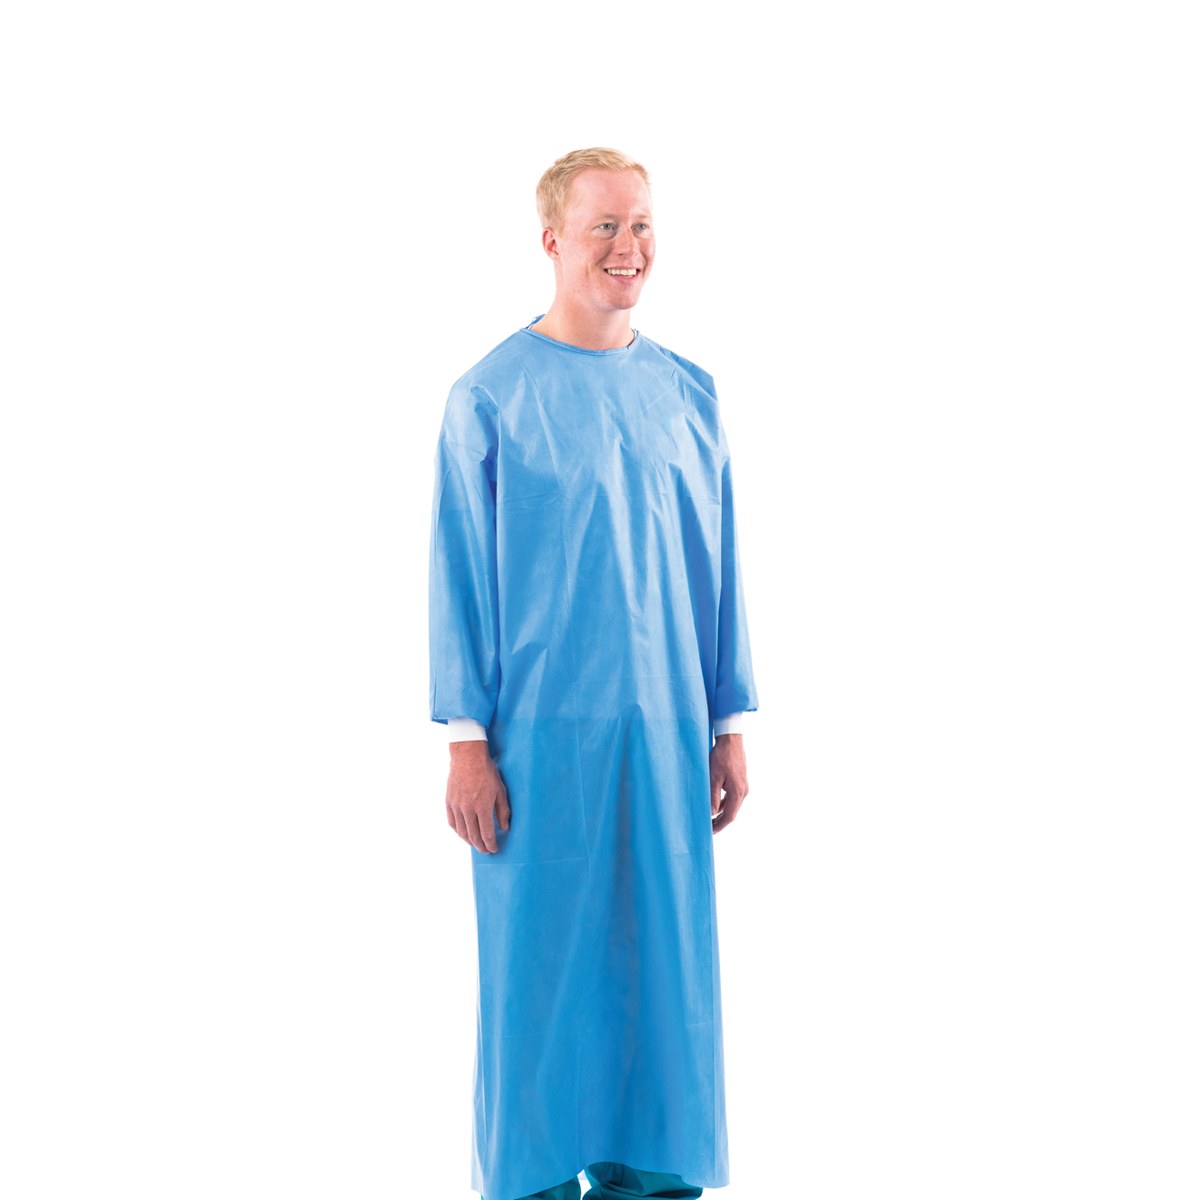 Barrier Gown Image